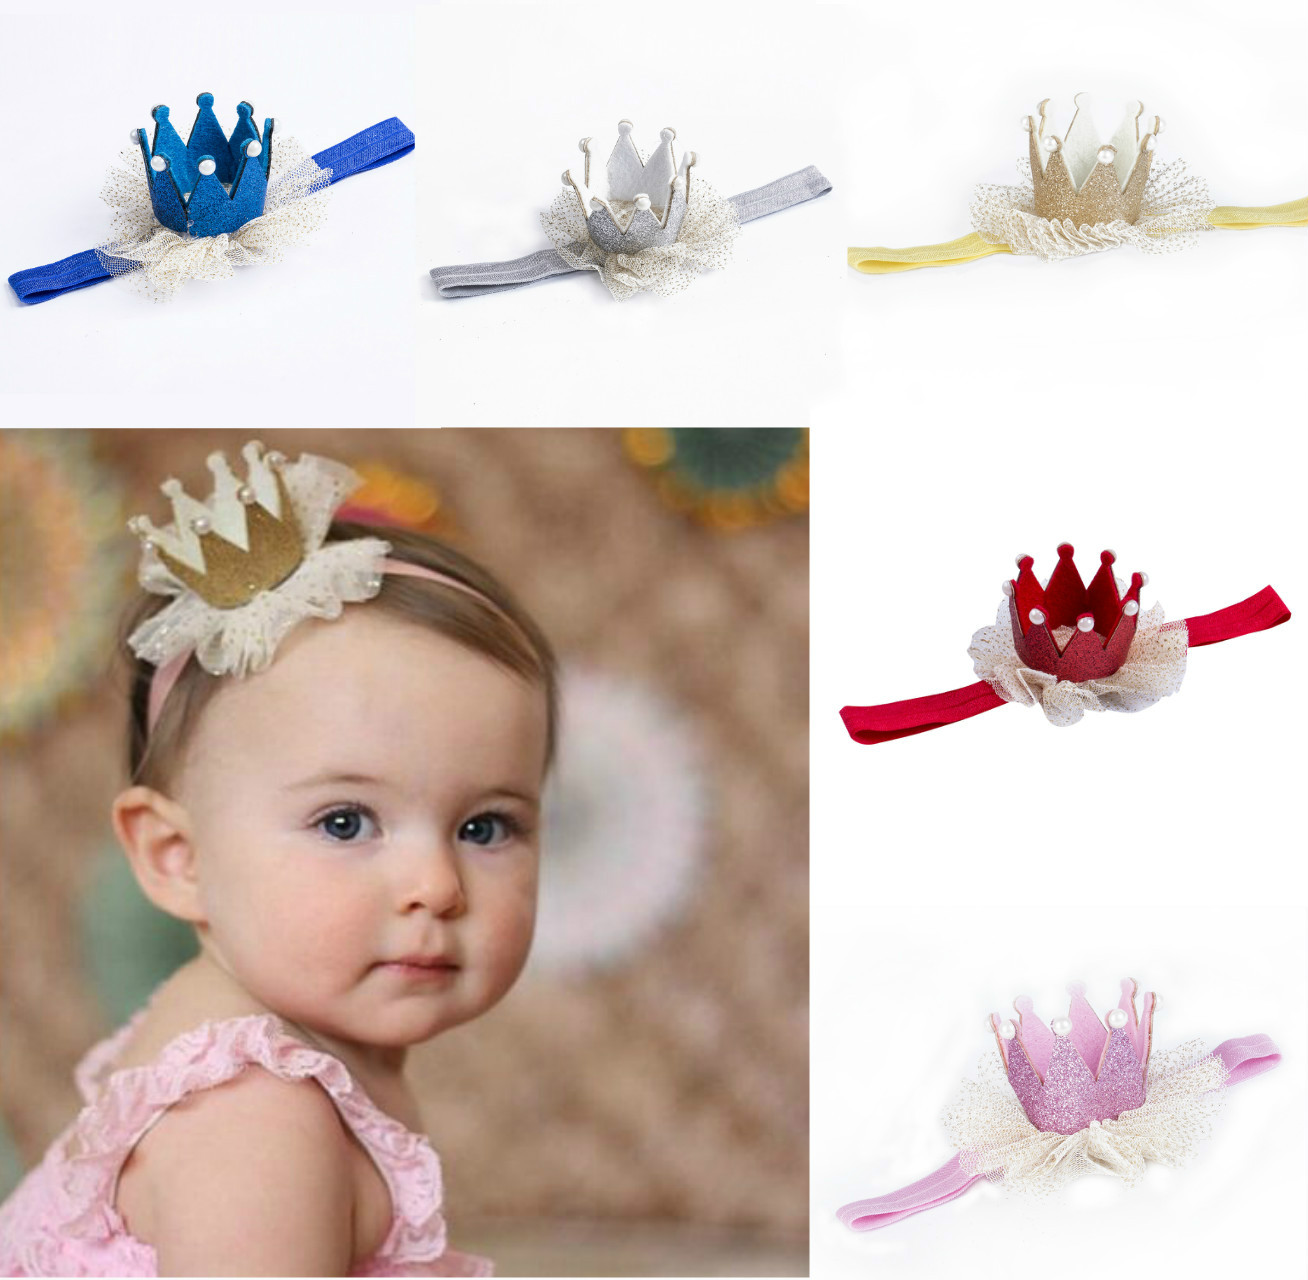 Baby Girl Hairband Headdress Newborn Baby Kids Flower Soft Elastic Tiara Hair Band Girls Bow Headband Hair Accessories leetro original software green dongle for mpc6515c and mpc6525a